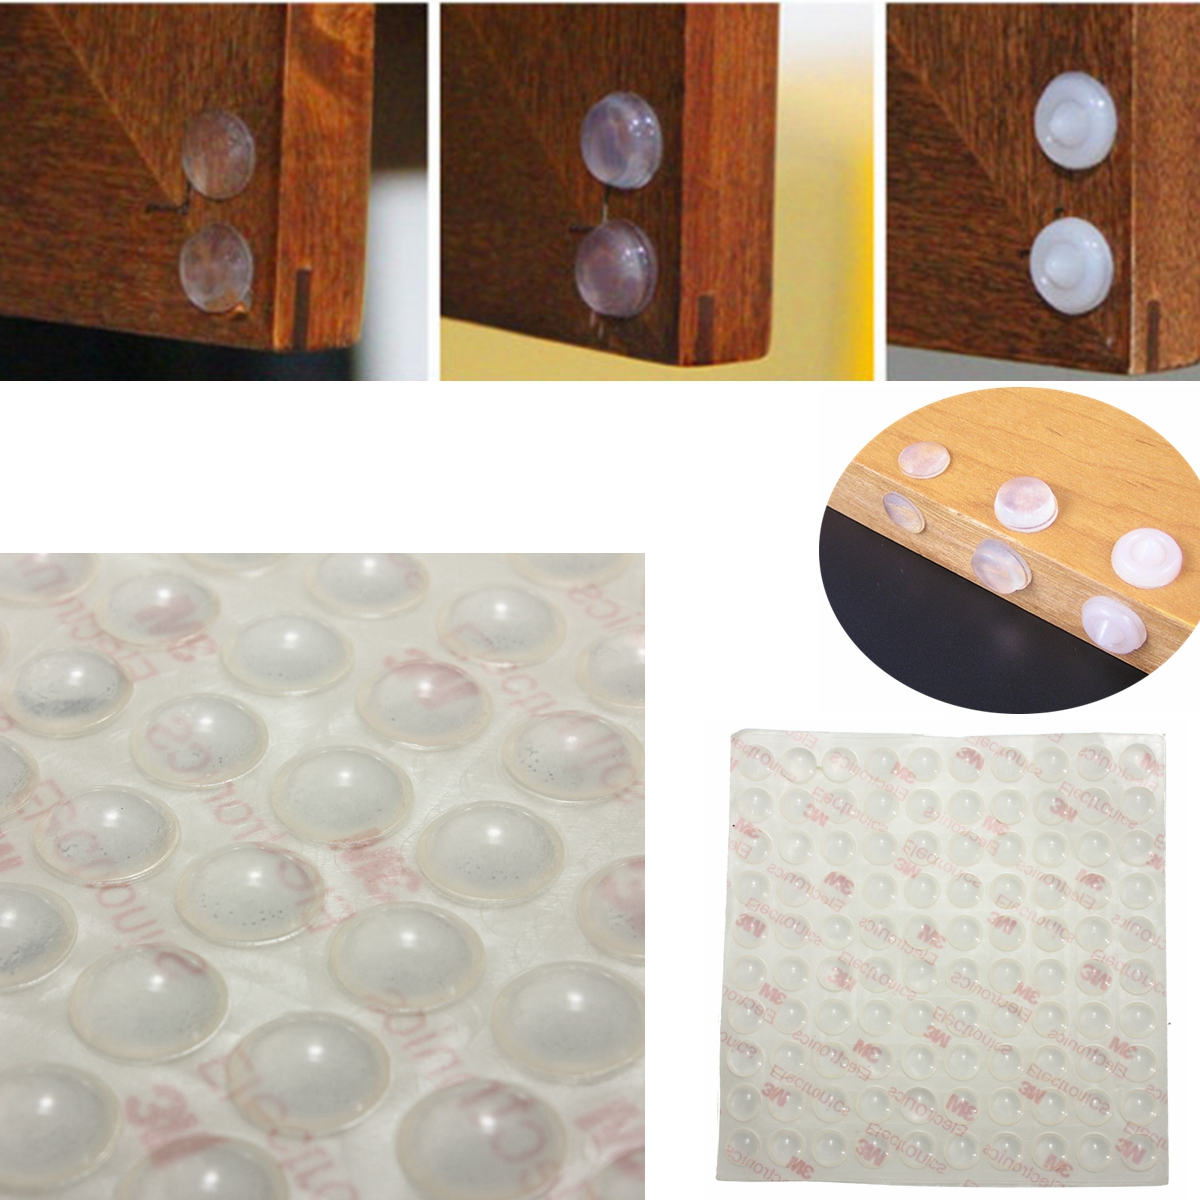 Ebay Kitchen Cabinets >> 100Pcs Self Adhesive Silicone Feet Bumpers Door Cupboard ...